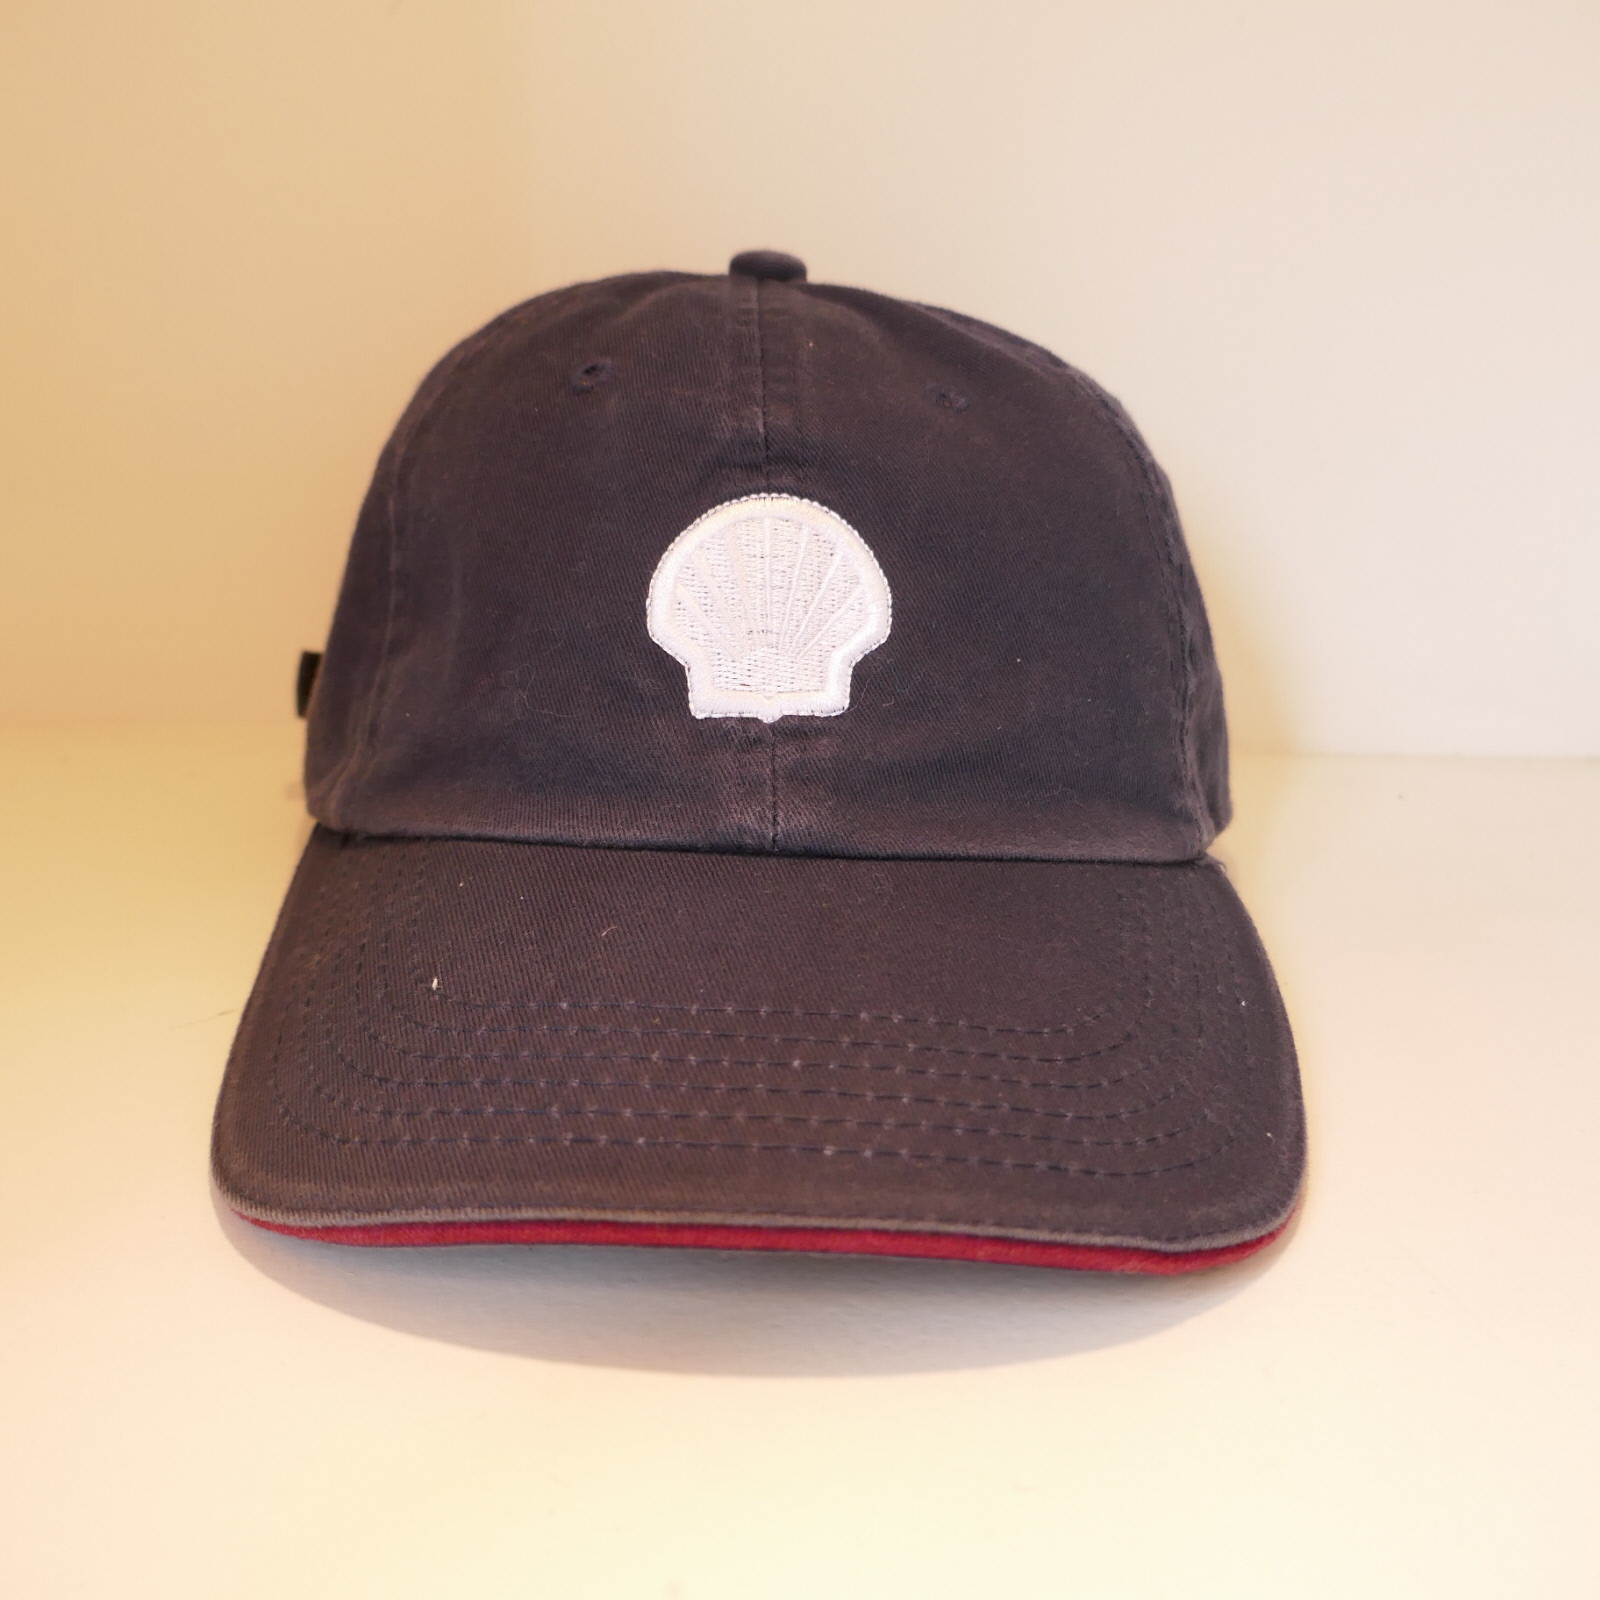 USED SHELL WHITE LOGO CAP NAVY